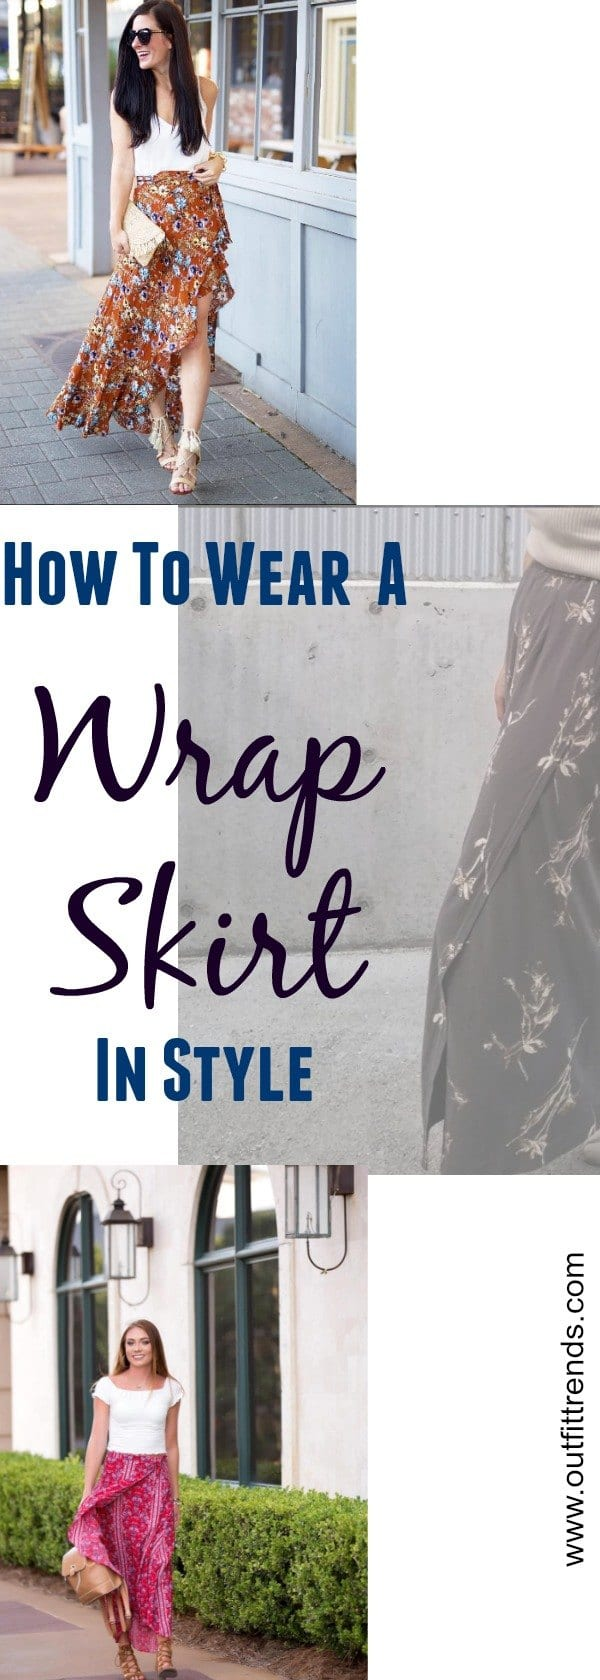 photo Stylish Wrap Skirt Outfits-28 Ideas on How to Wear Wrap Skirts